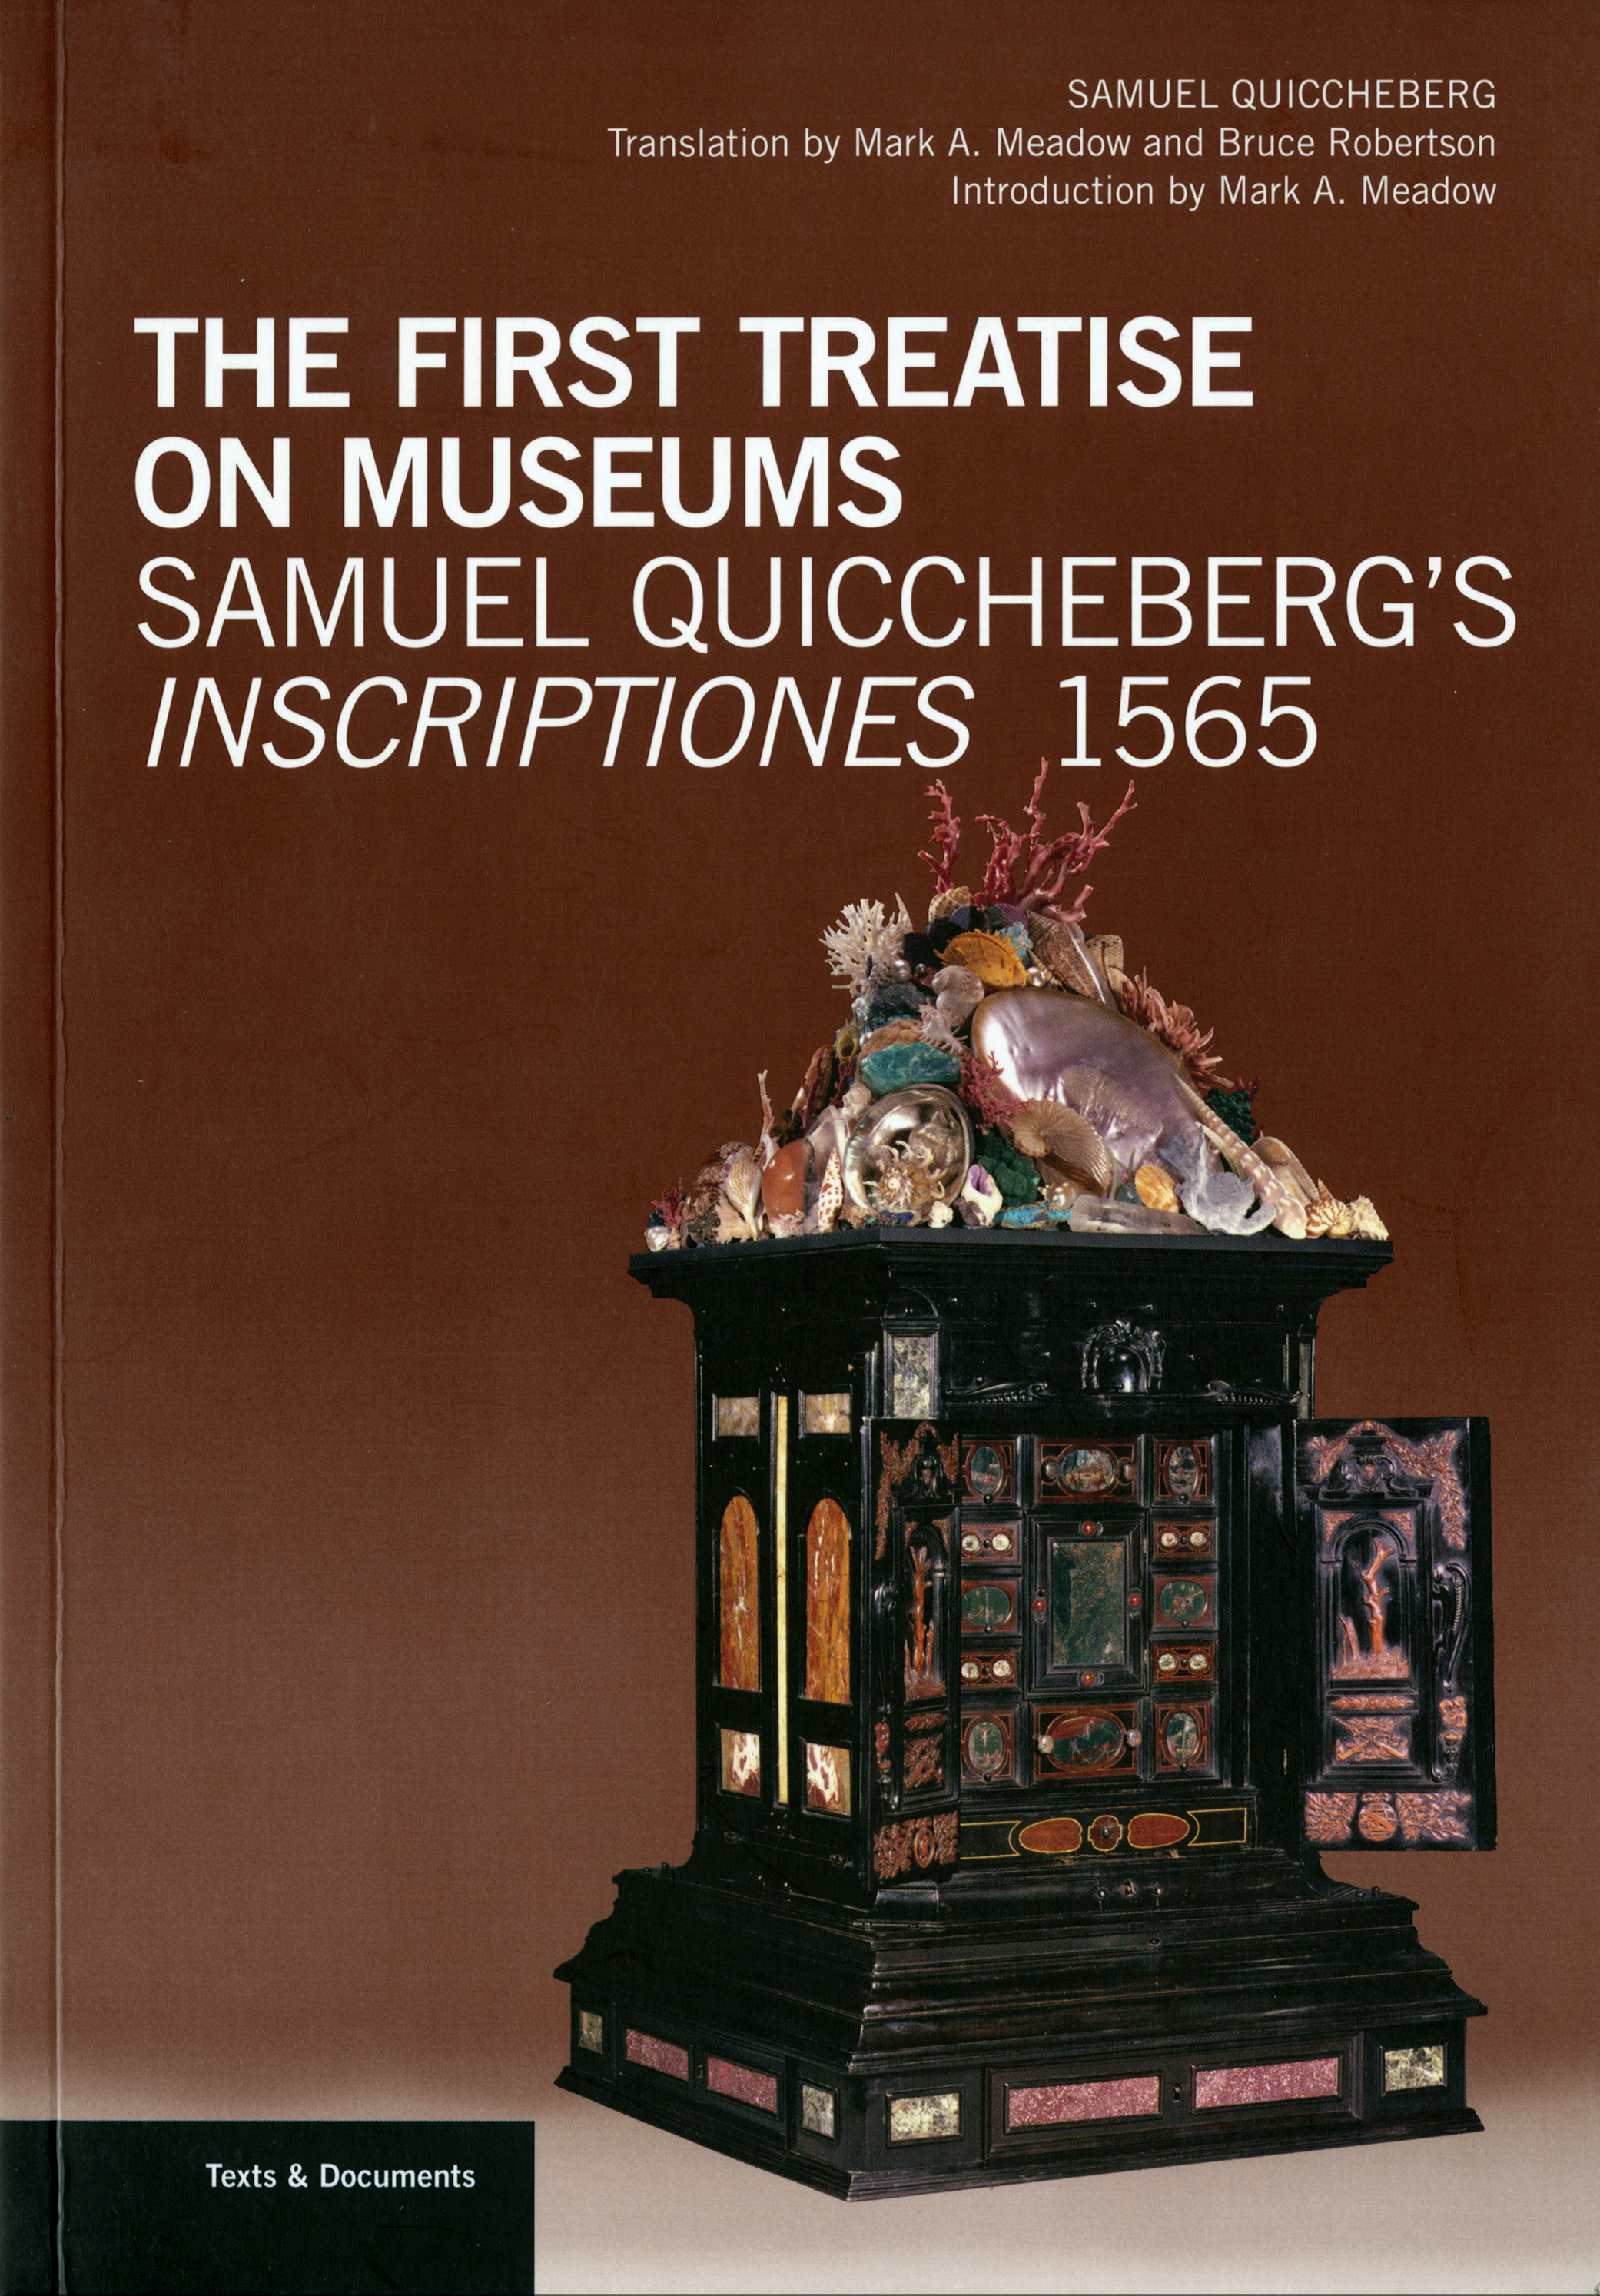 Samuel Quiccheberg. The First Treatise on Museums: Samuel Quiccheberg's Inscriptiones, 1565. Translated by Mark A. Meadow and Bruce Robertson, Introduction by Mark A. Meadow. Los Angeles: Getty Research Institute, 2014.